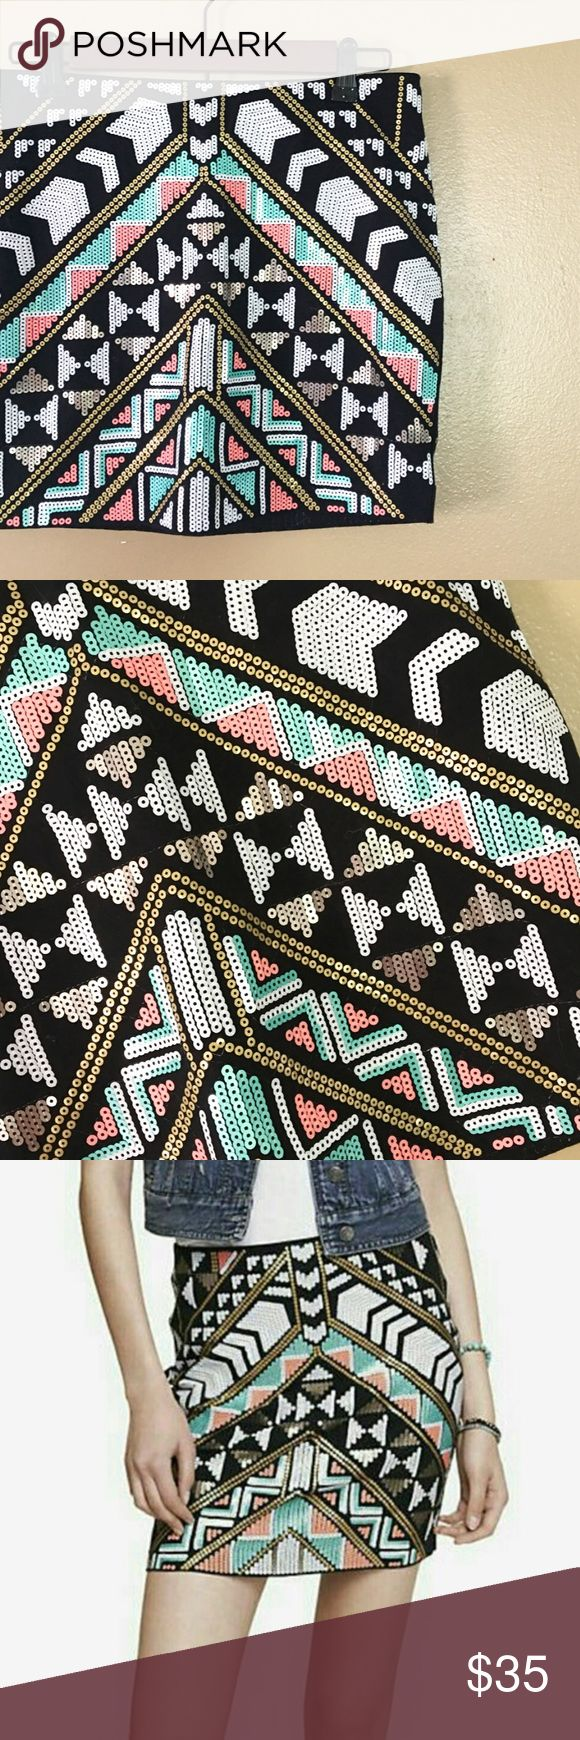 Express Aztec Mini Skirt 🌞 This trendy mini skirt is perfect paired with tights and booties for girls night out! Full cotton lining makes it super comfy and wearable in any weather. NWT, perfect condition. Express Skirts